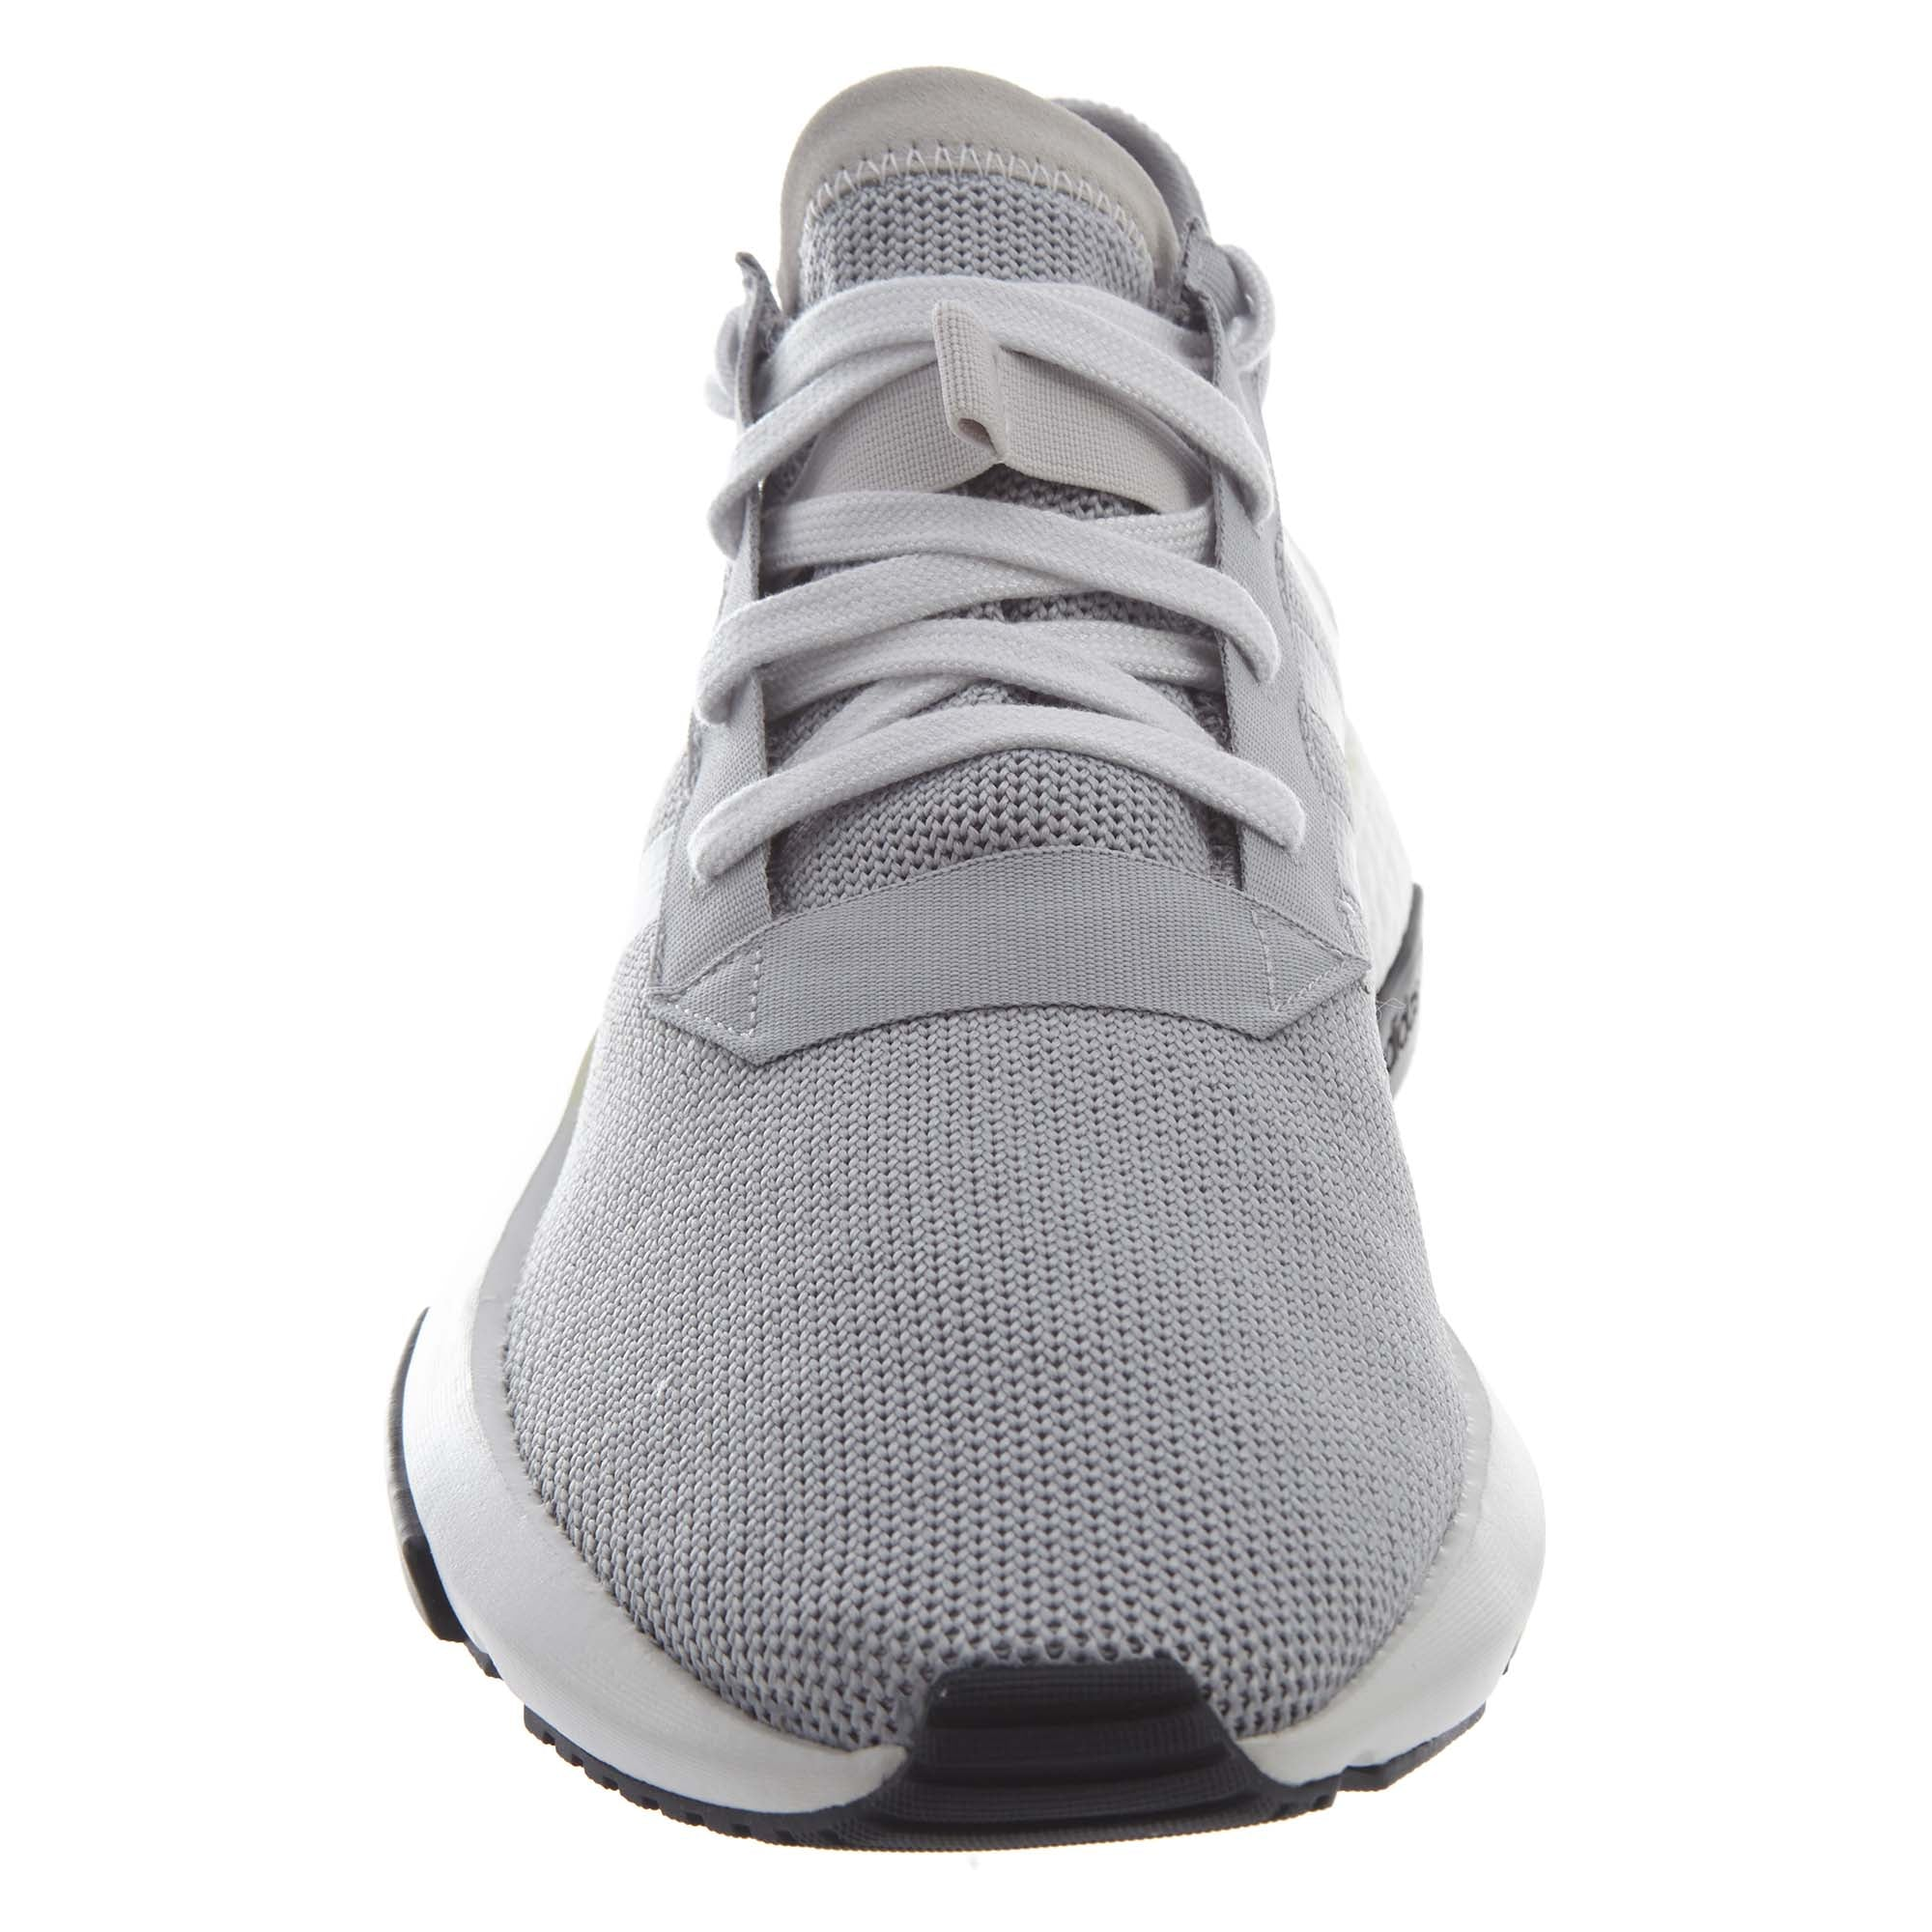 40c0228d7f3d Adidas Pod-s3.1 Mens Style   B37363-Grey. ADIDAS   Athletic Shoes   Sneakers